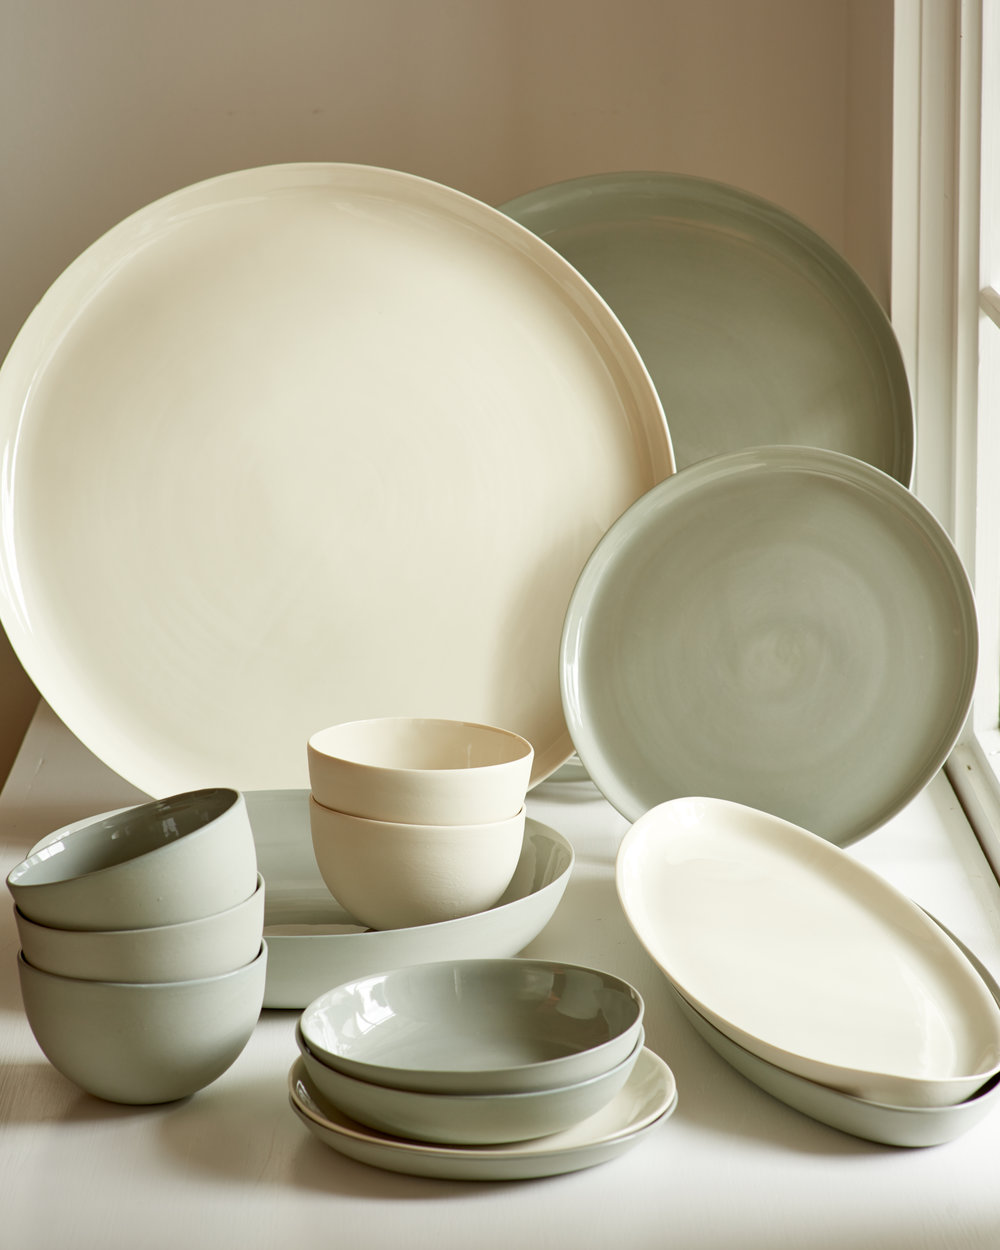 Ceramic dinnerware, serving pieces, from $38